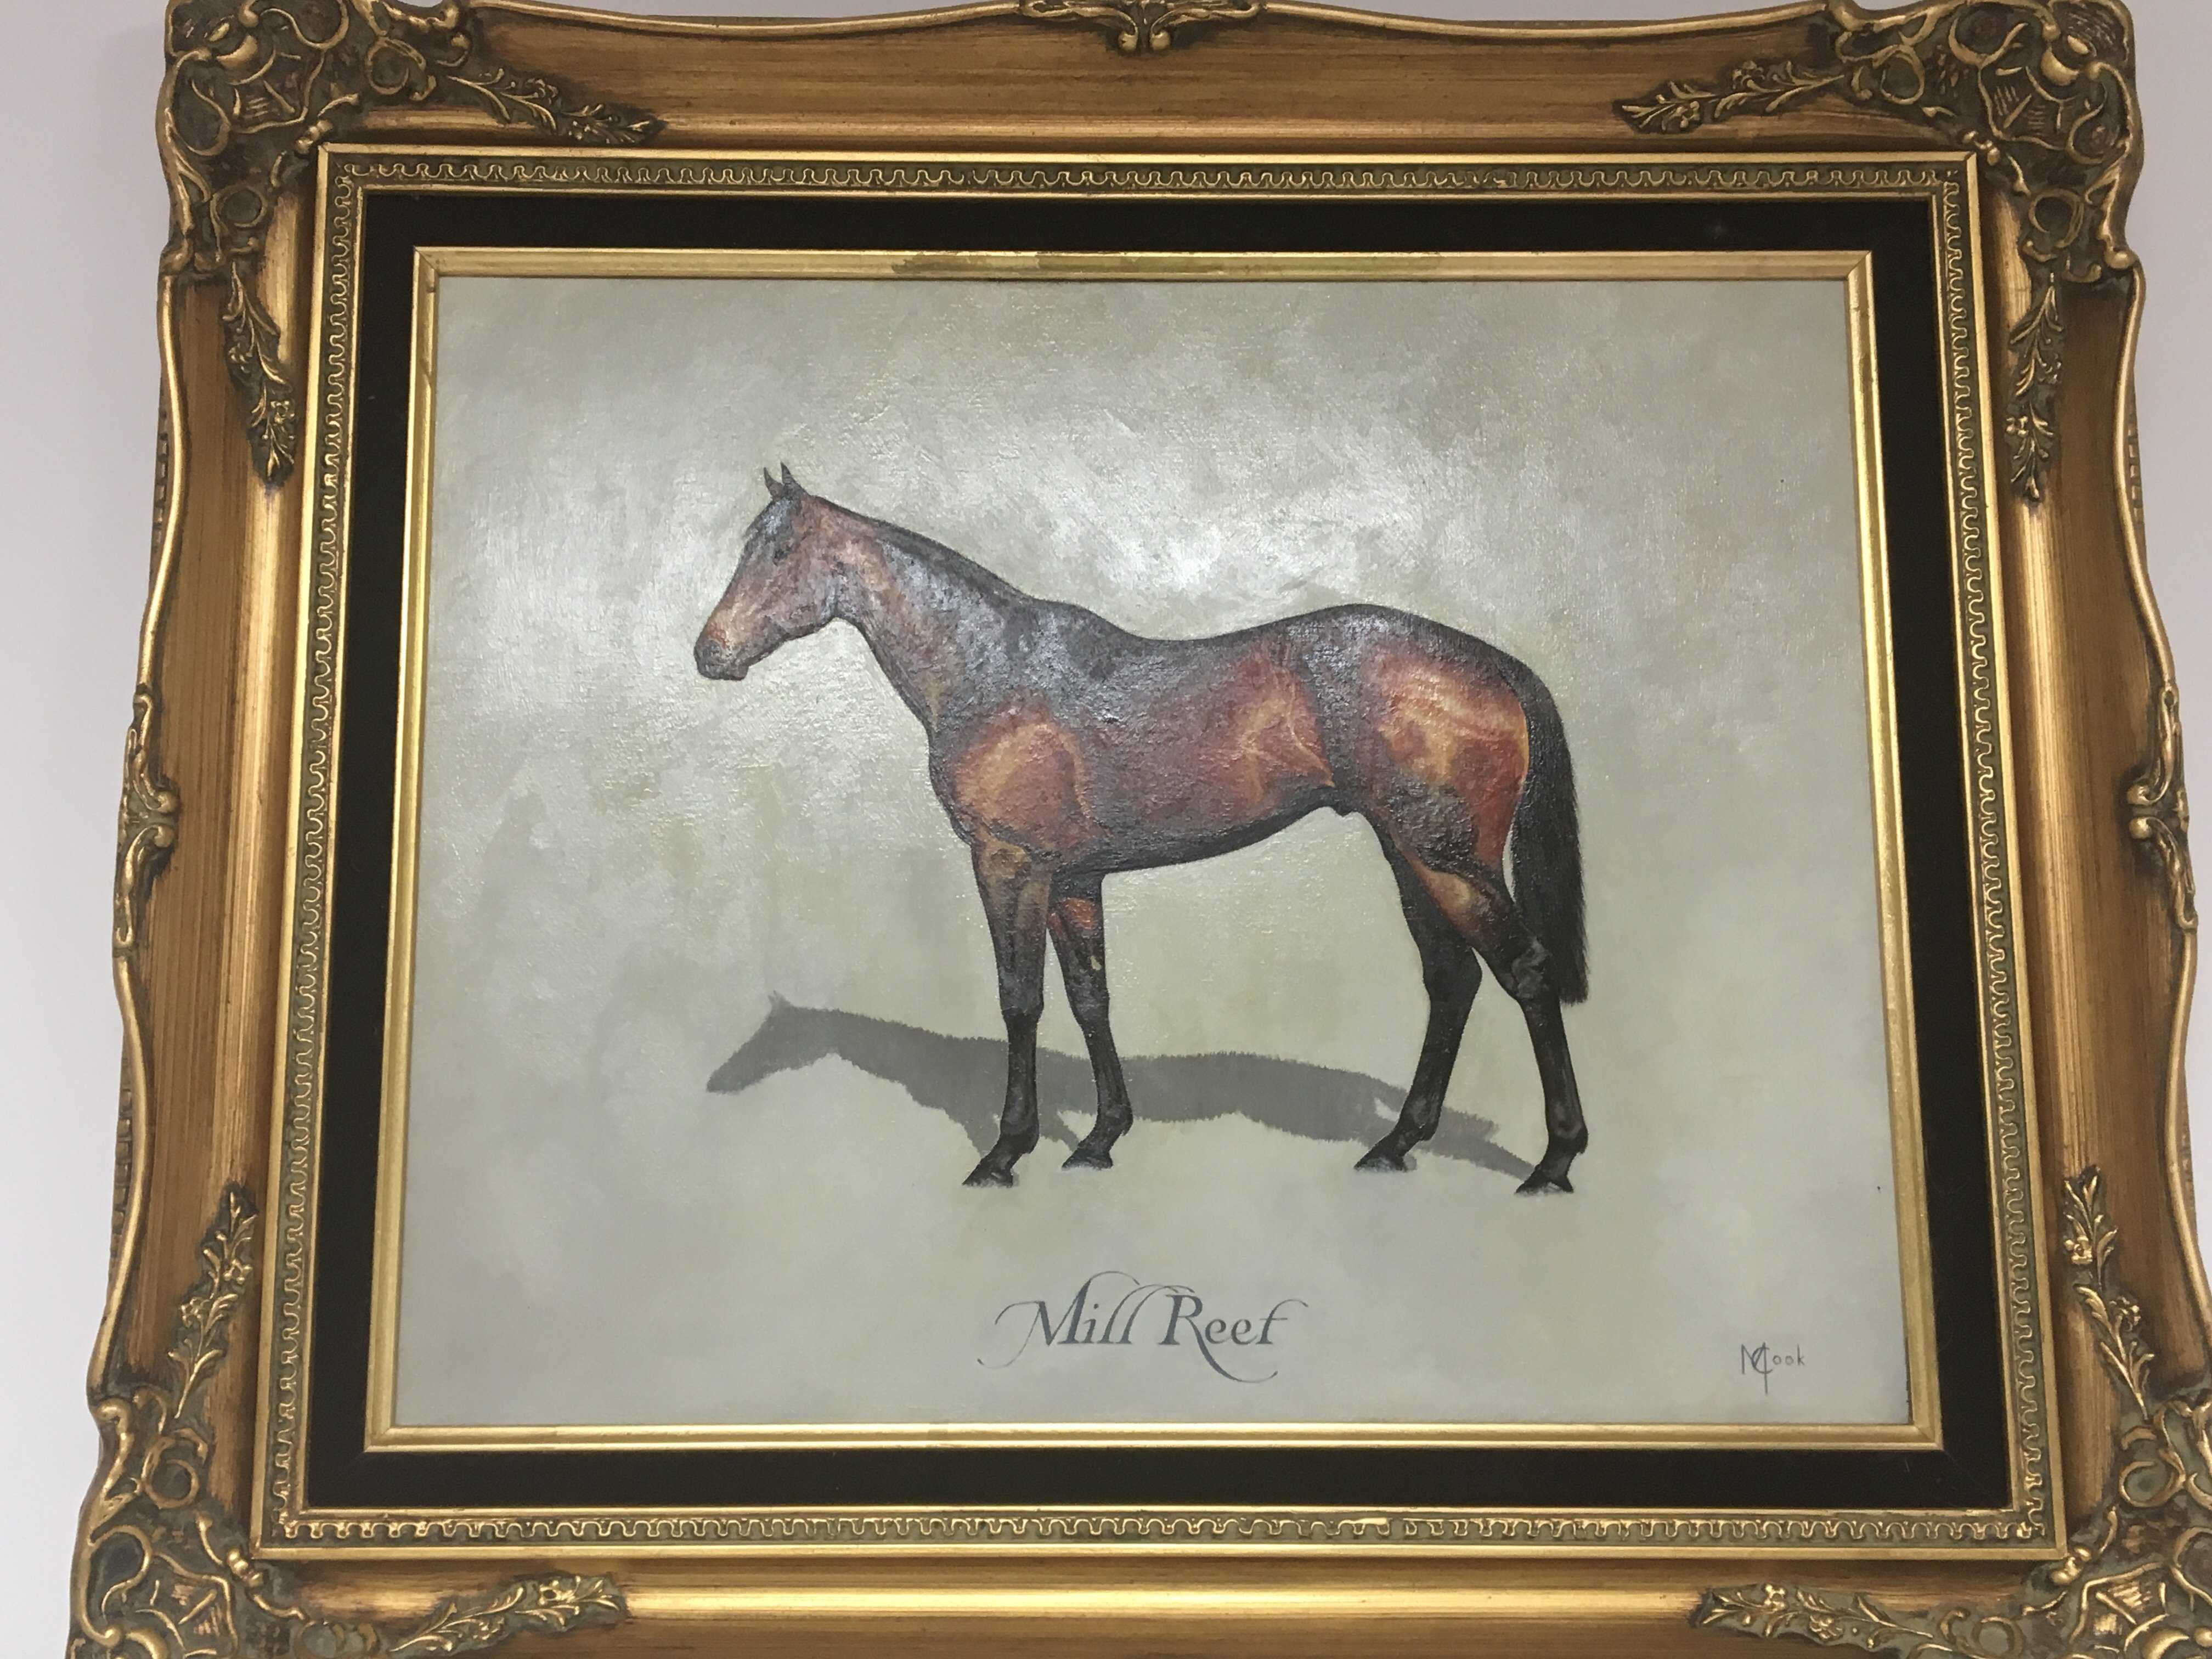 Lot 1221 - A gilt Framed oil painting on canvas of Mill Reef.